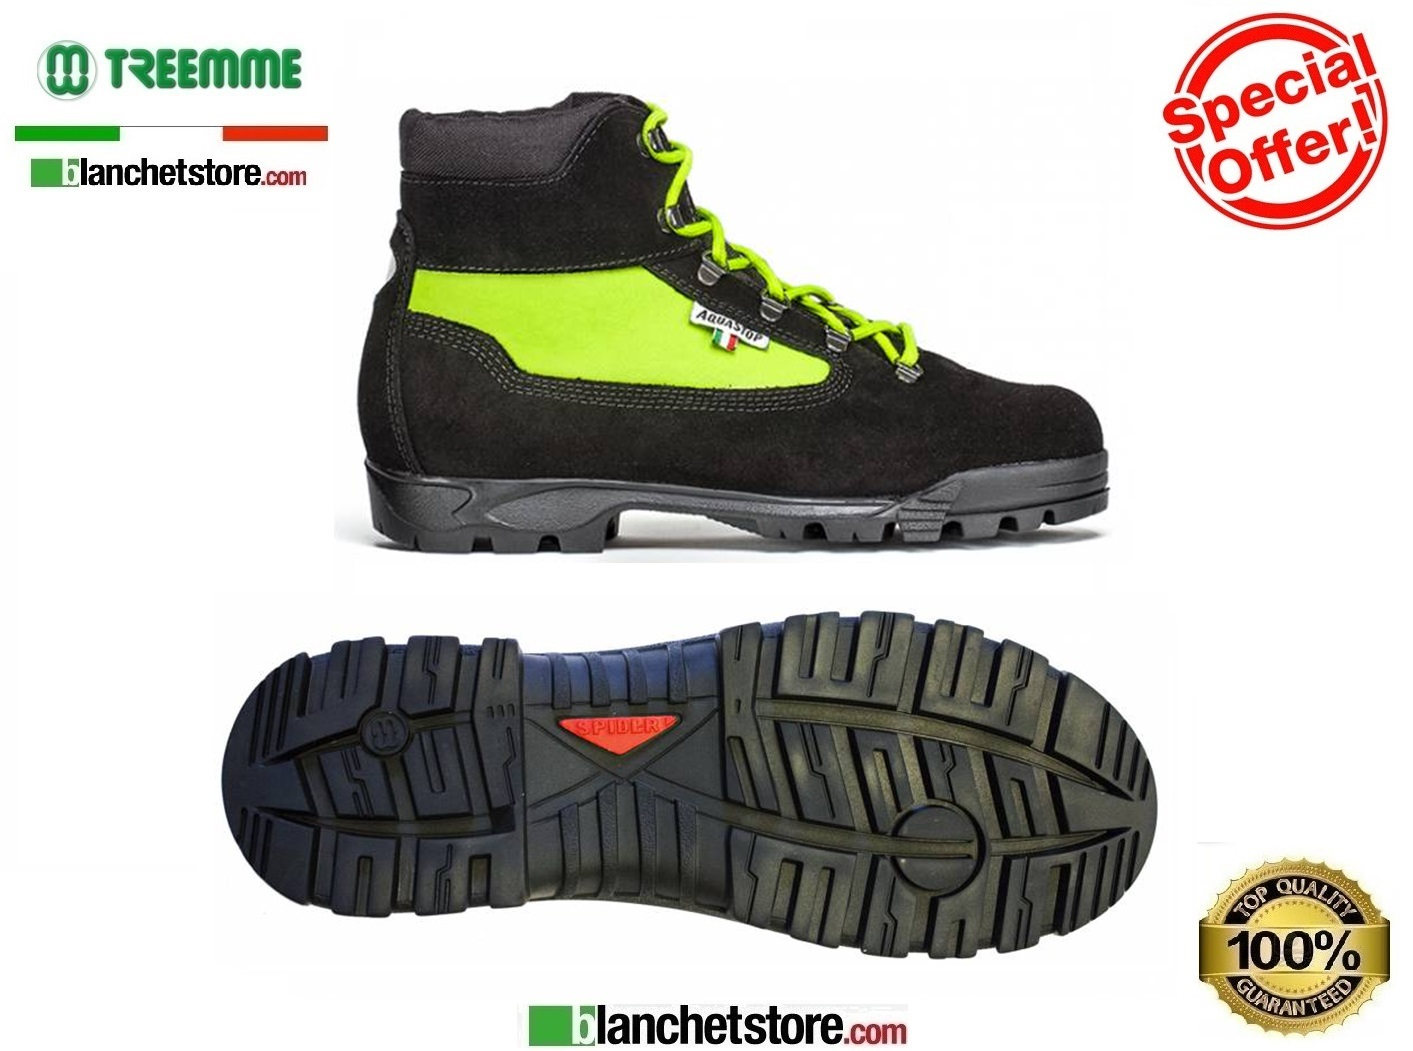 Scarponcino Trekking in crosta-cordura 9518 N.38 Acquastop Yello